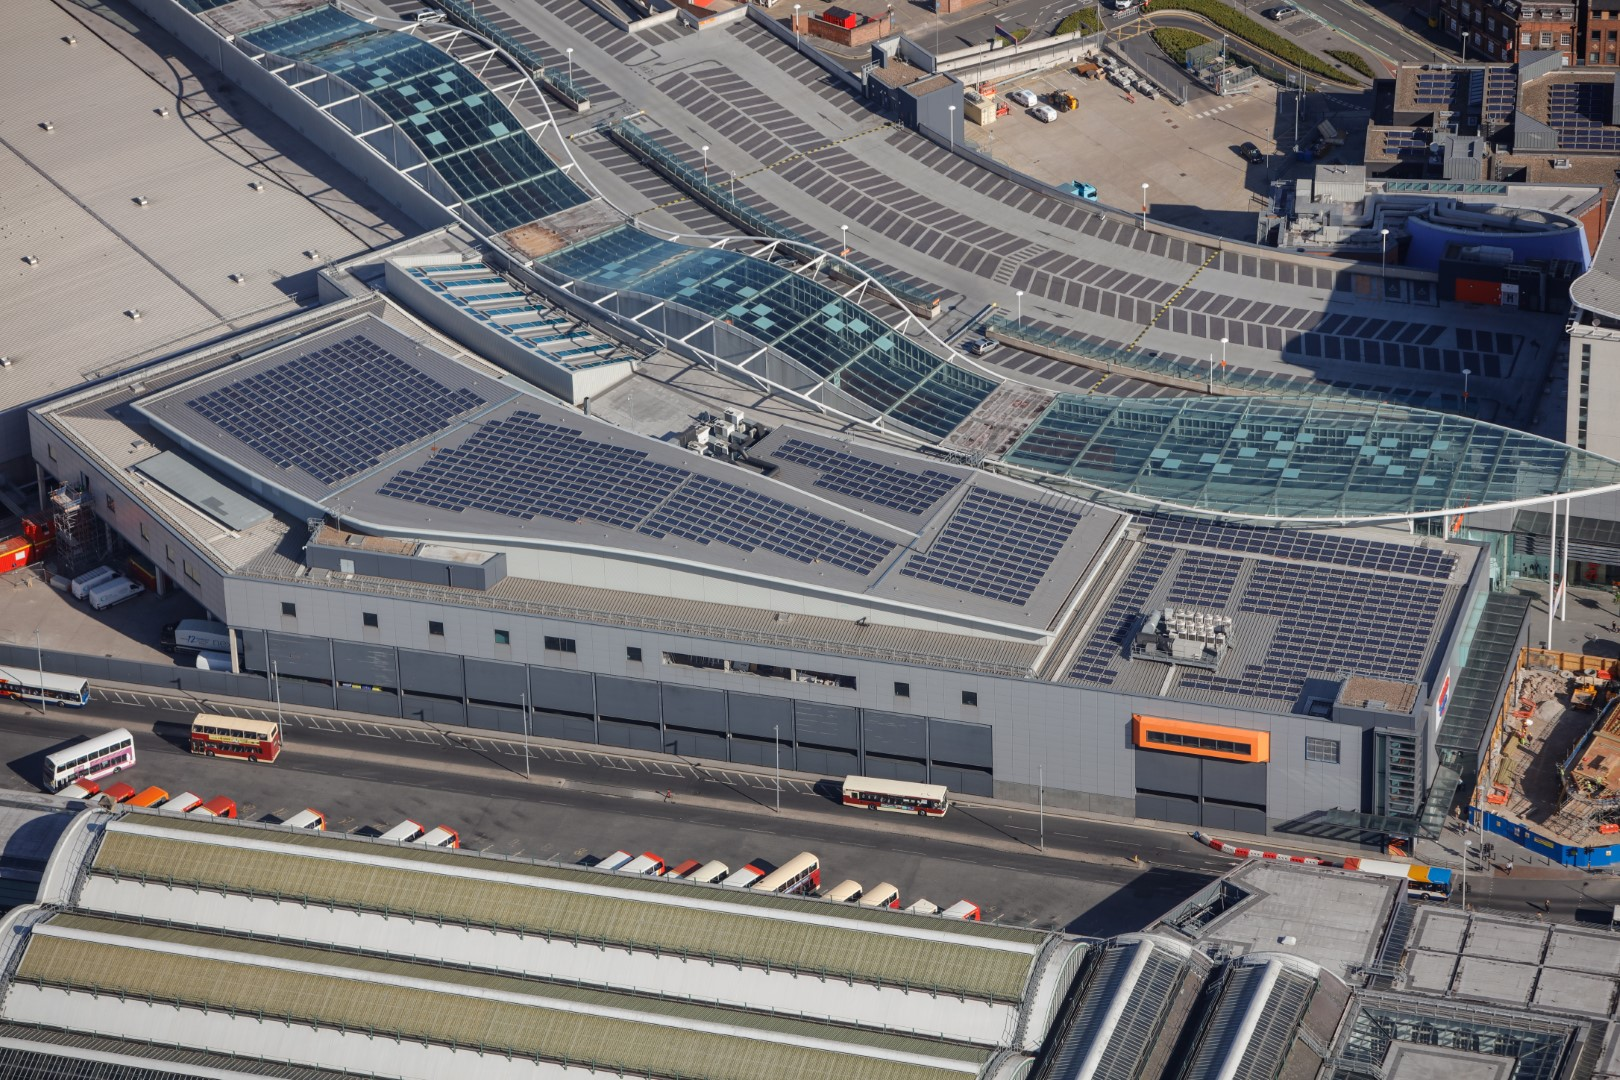 birds eye view of solar panels on shopping centre roof